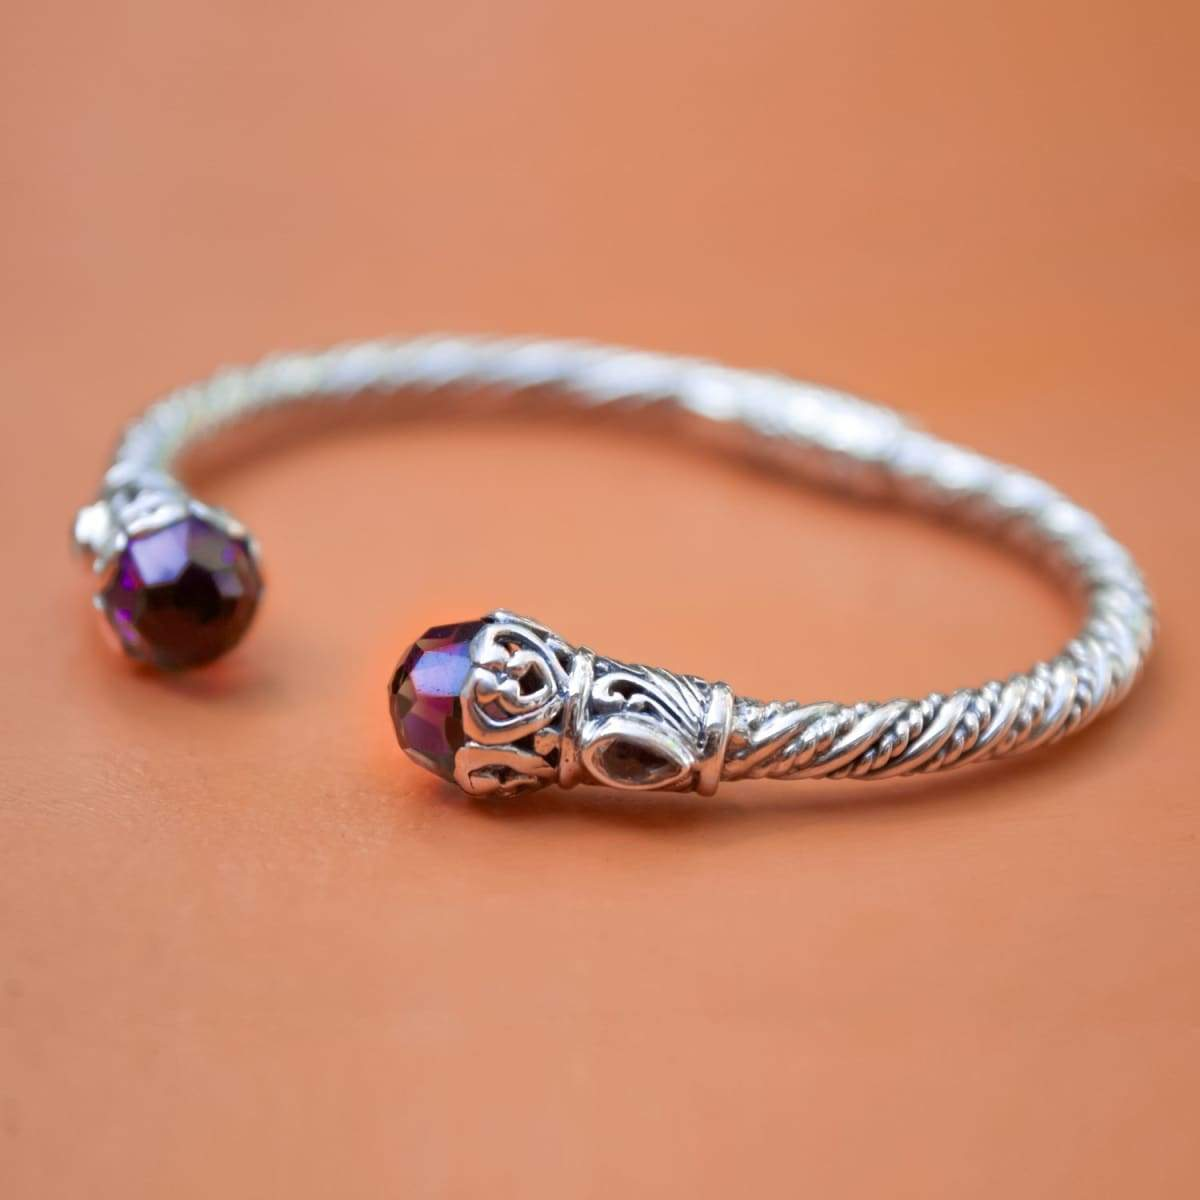 Bracelets Amethyst and Citrine Silver Cable Bracelet Handmade Bali Jewelry Gift for women - by Craftnez